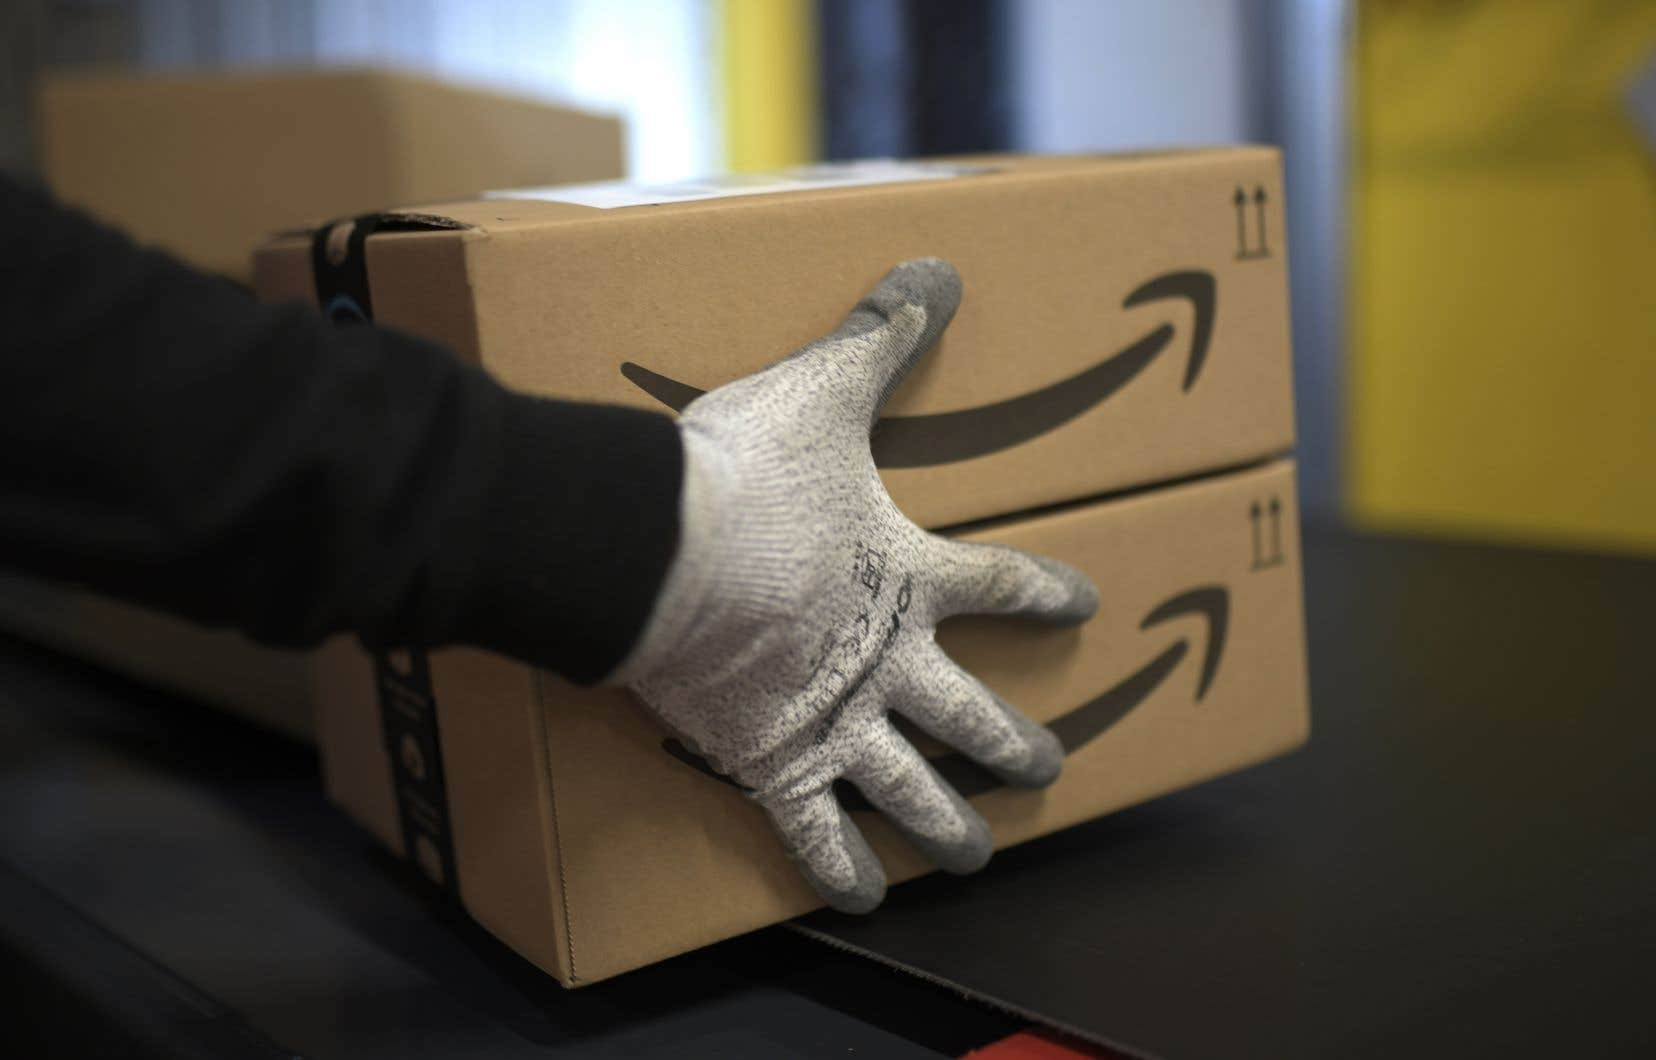 Aux États-Unis, le groupe Amazon dispose de 150 points de livraison qui emploient plus de 90 000 collaborateurs de la branche Amazon Logistics.